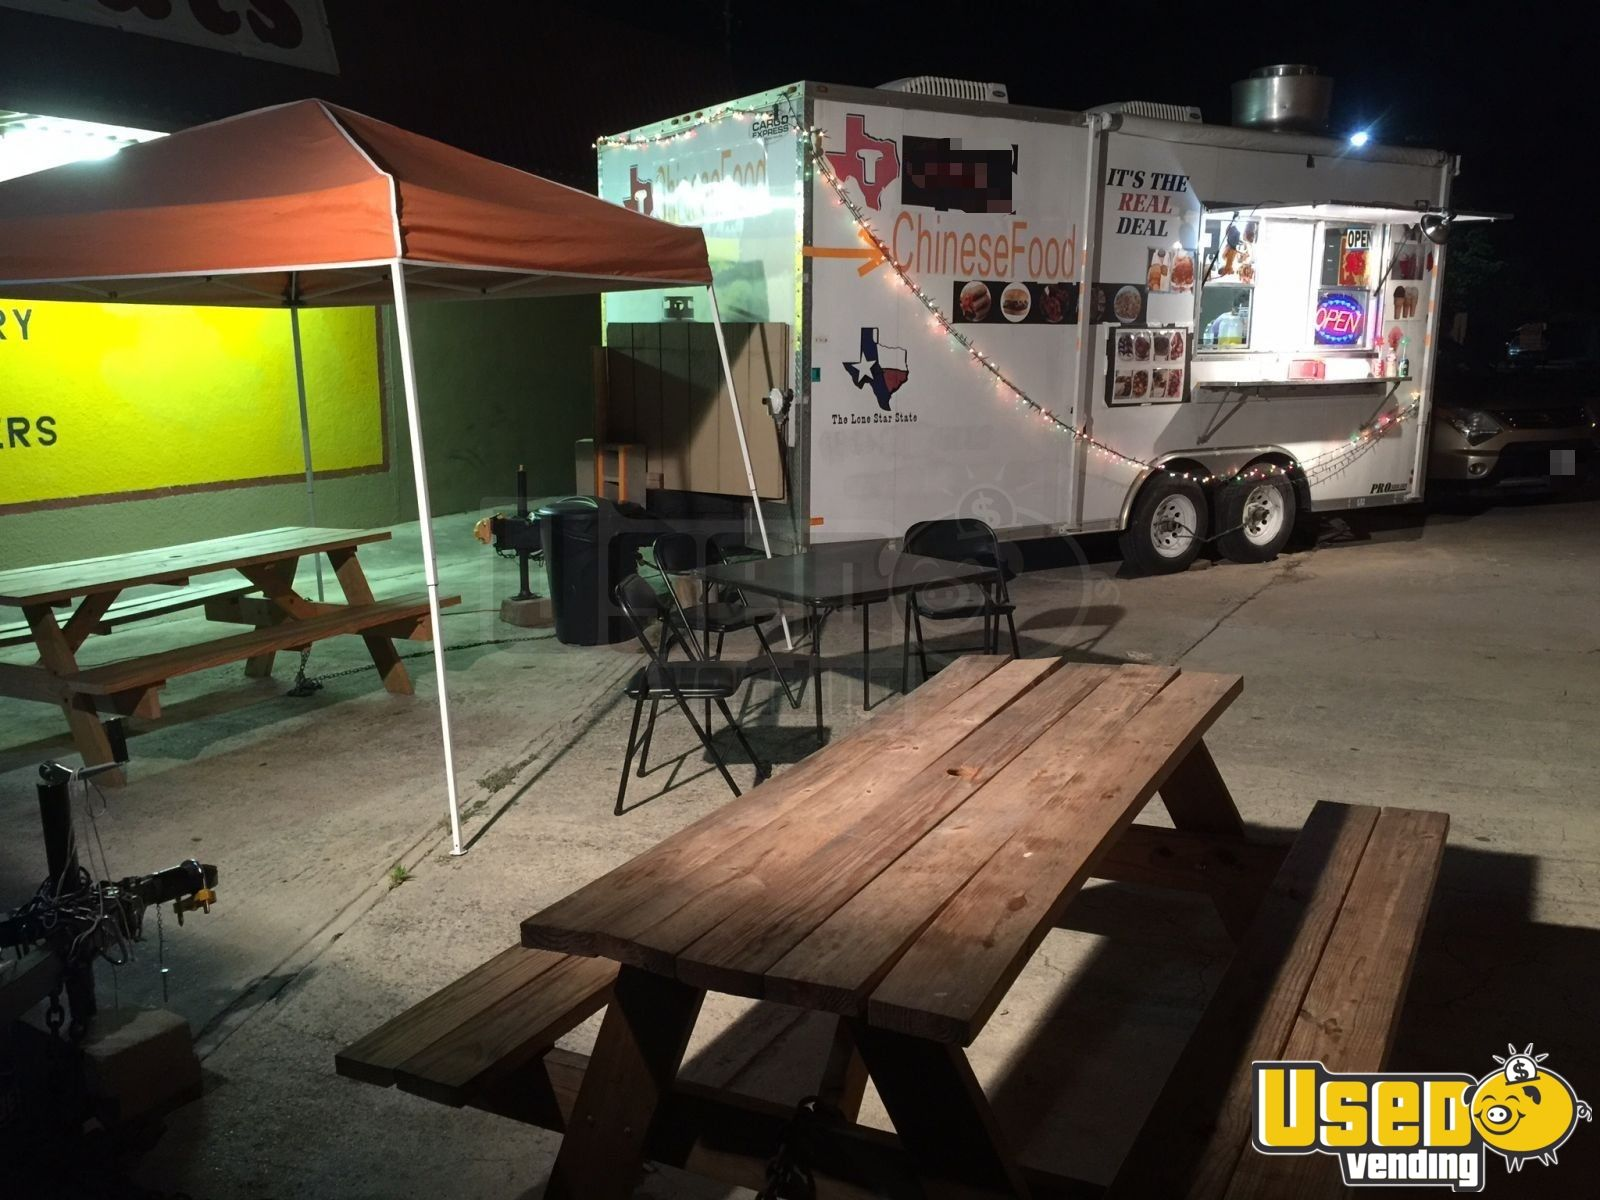 2008 Food Concession Trailer Kitchen Food Trailer Air Conditioning Texas for Sale - 2